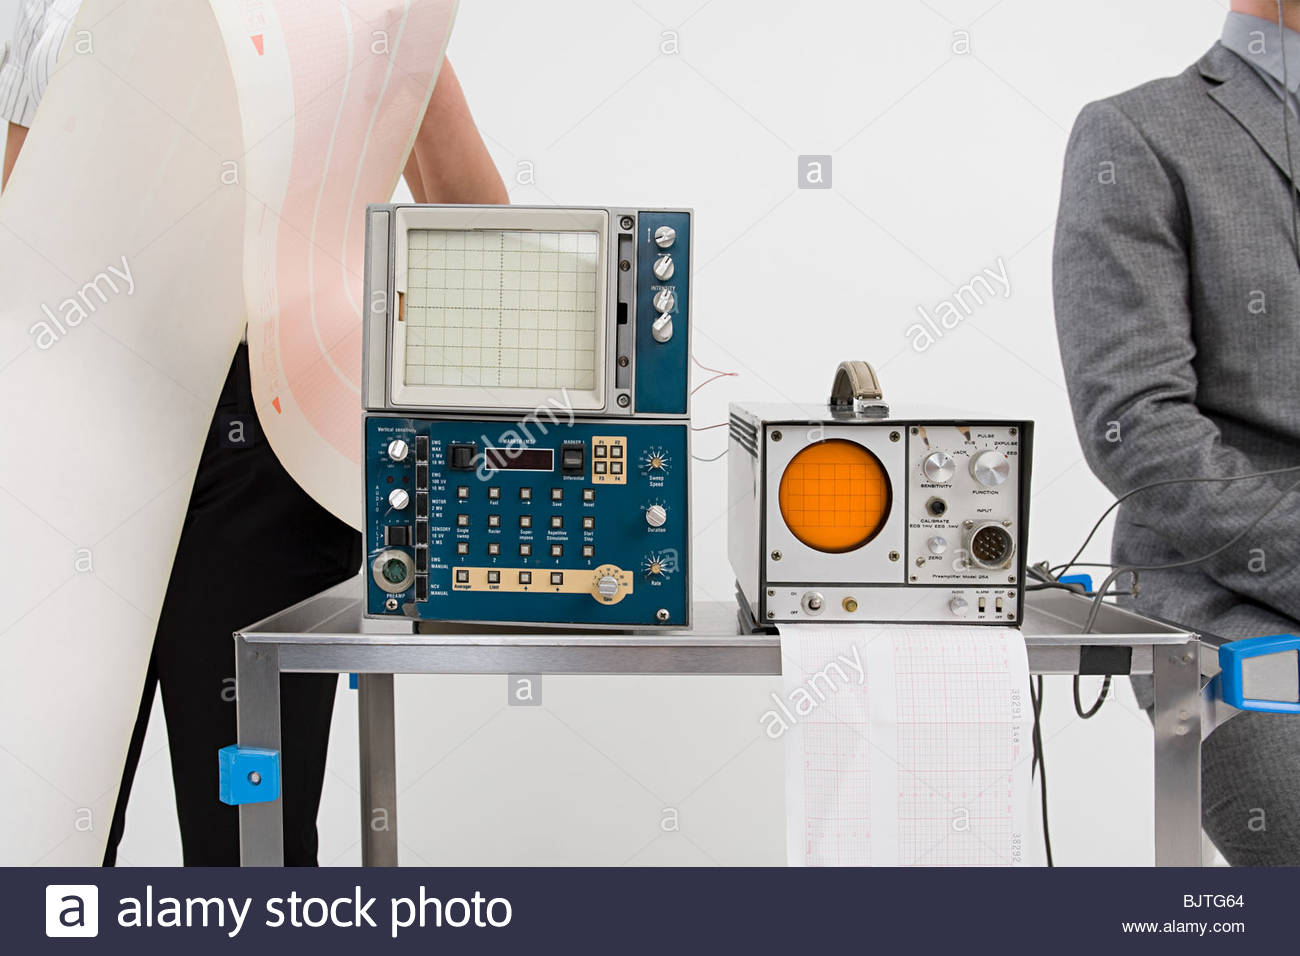 People and scientific equipment - Stock Image